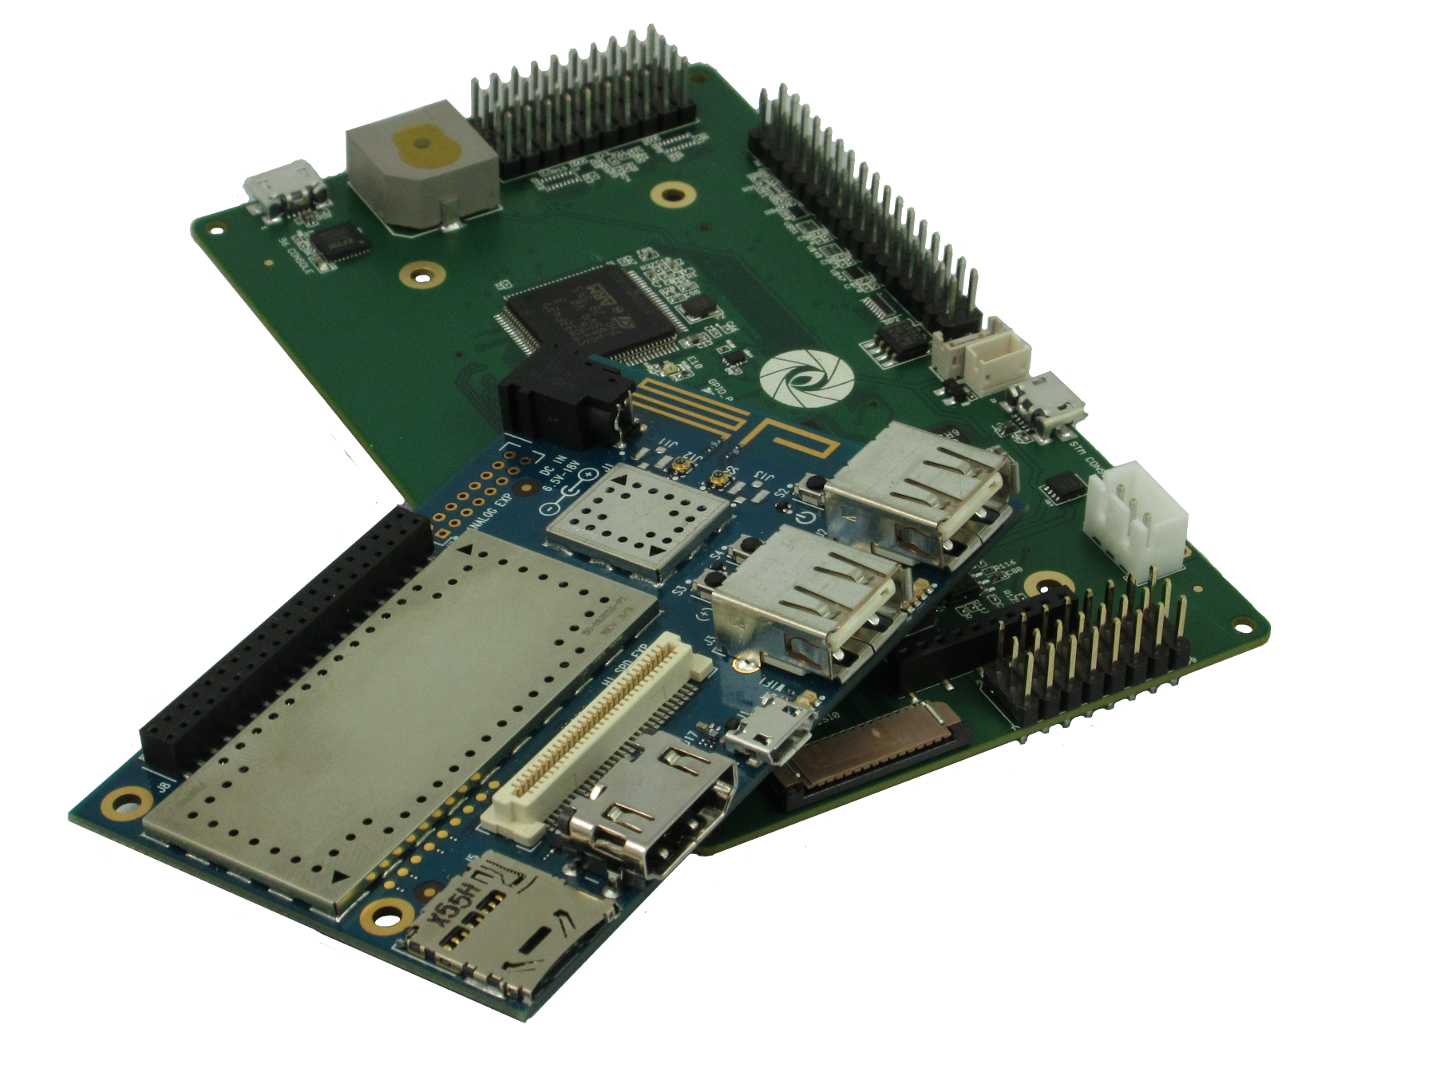 AeroCore 2 for DragonBoard 410C board featured in the drone video